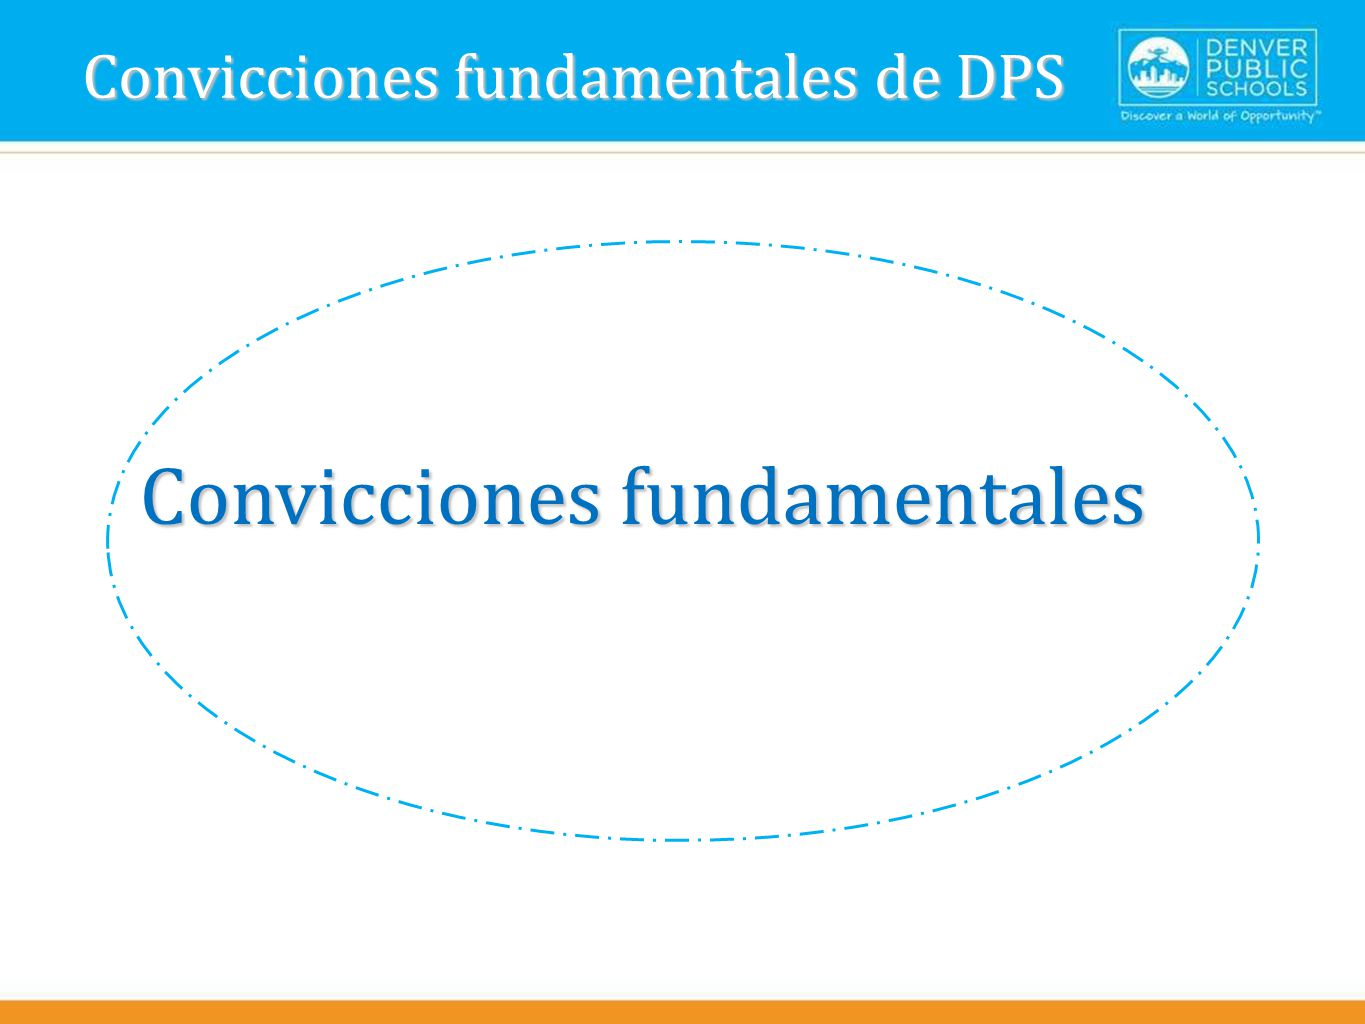 Convicciones fundamentales de DPS